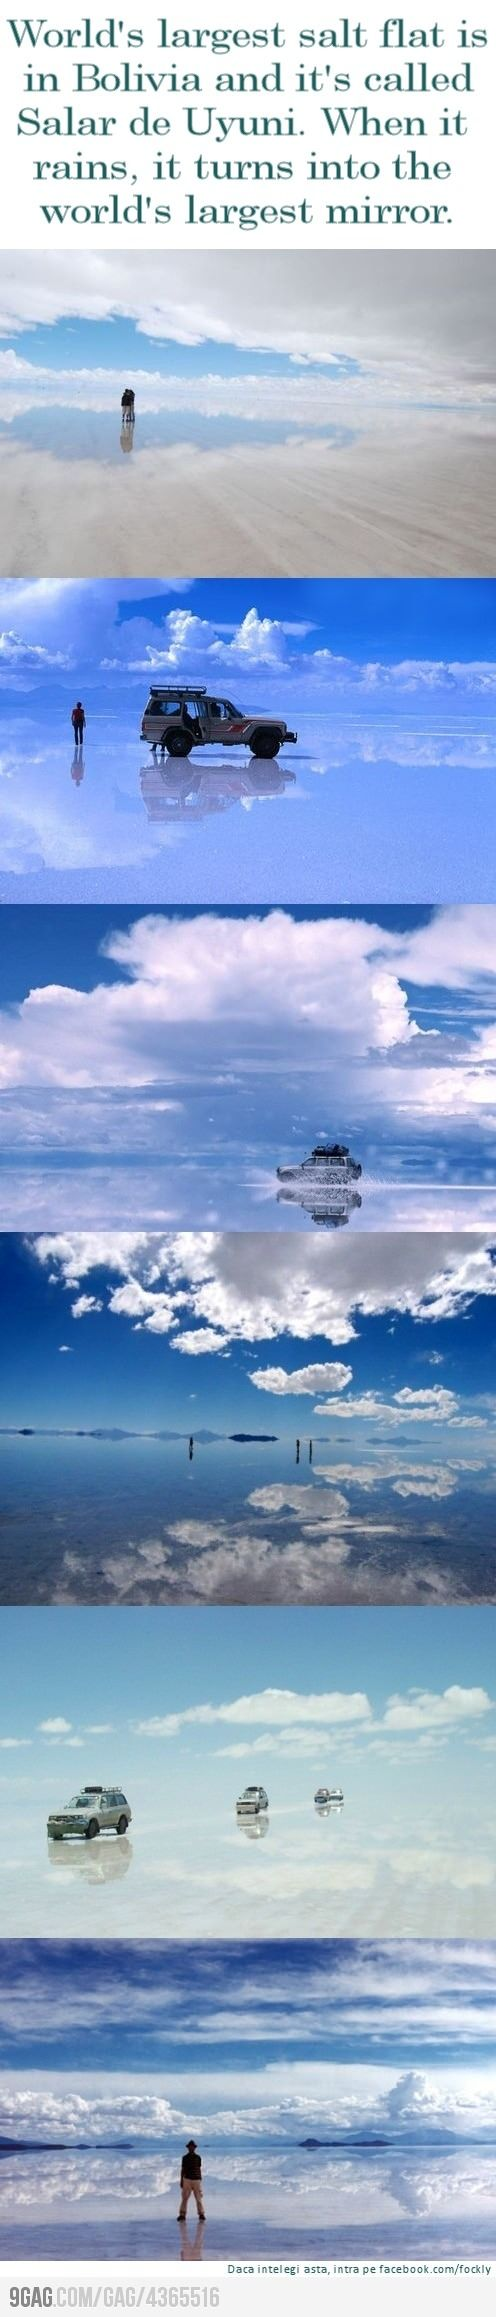 largest salt mirror, bolivia: Places To Visit, Largest Salts, Buckets Lists, The Salar De Uyuni, Salts Flats, World Largest, South America, Earth, Bolivia